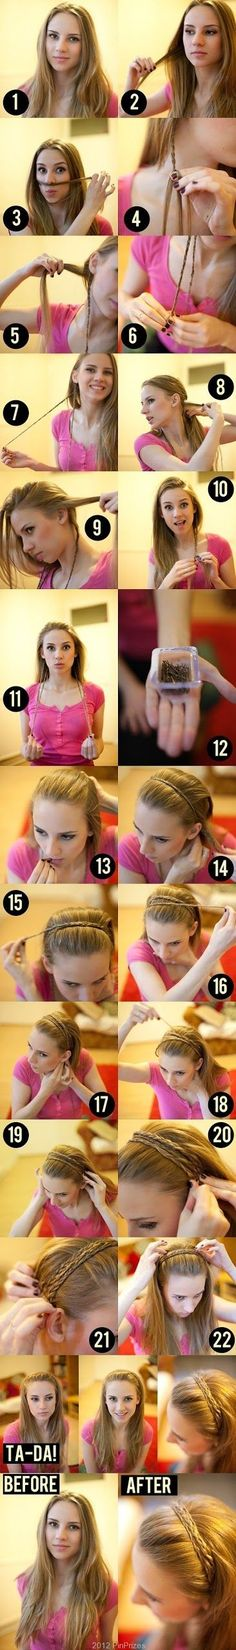 DIY Braid Headband Hairstyle